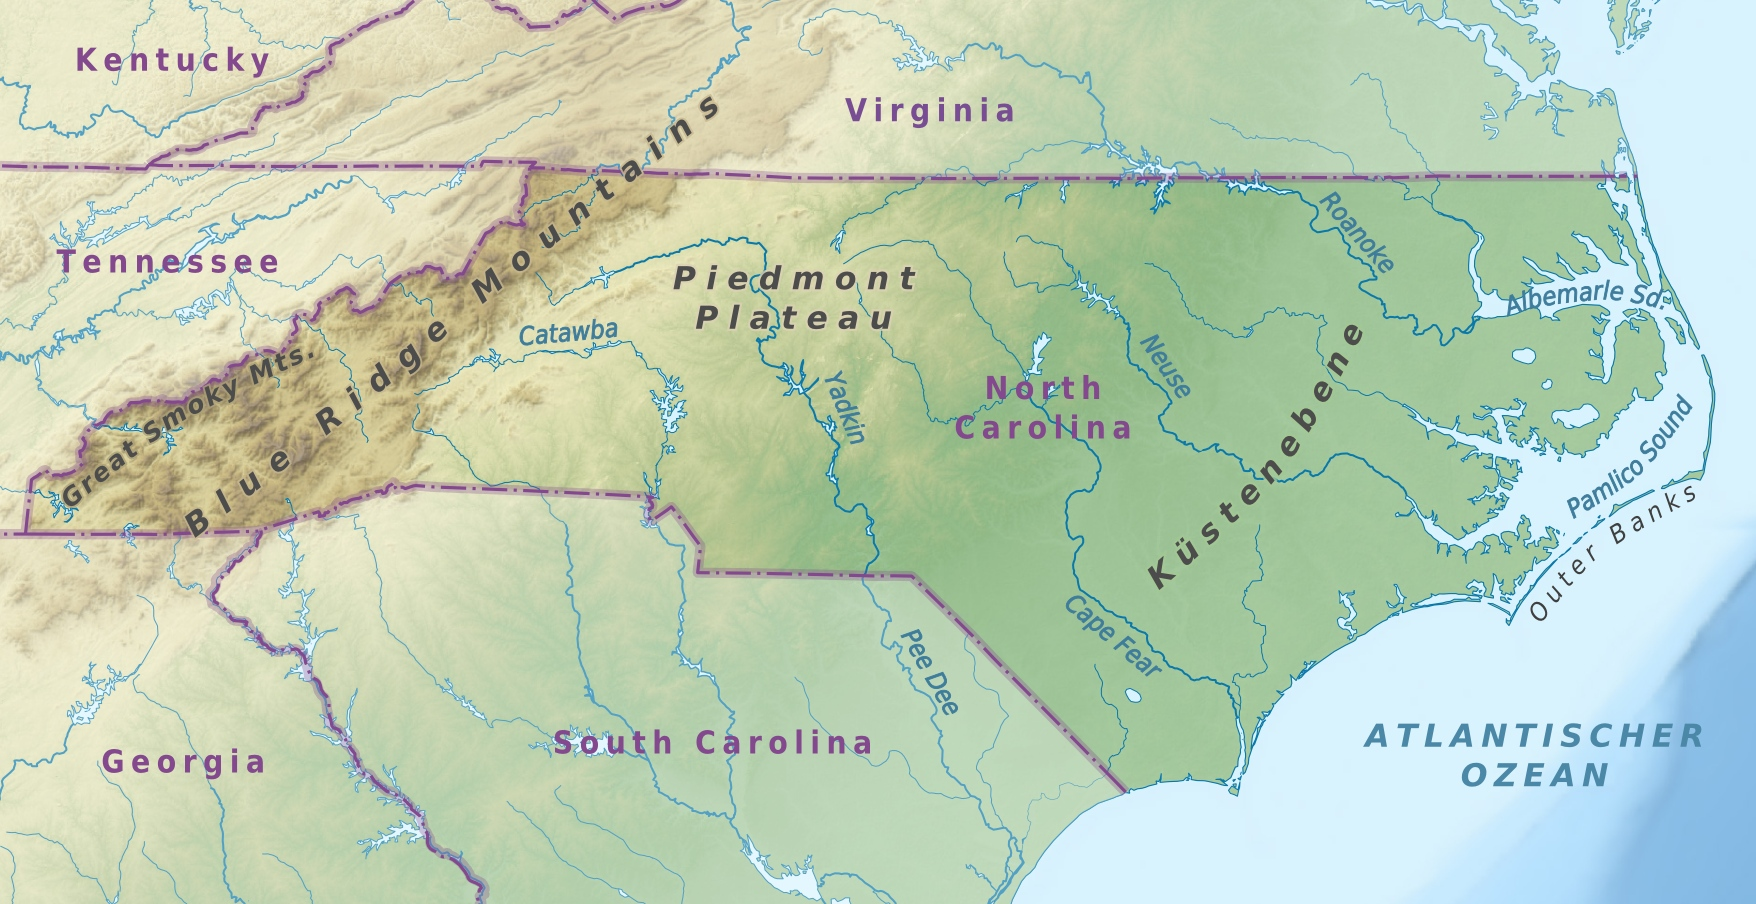 FileUSA North Carolina Physical Mapjpg Wikimedia Commons - Physical map of usa